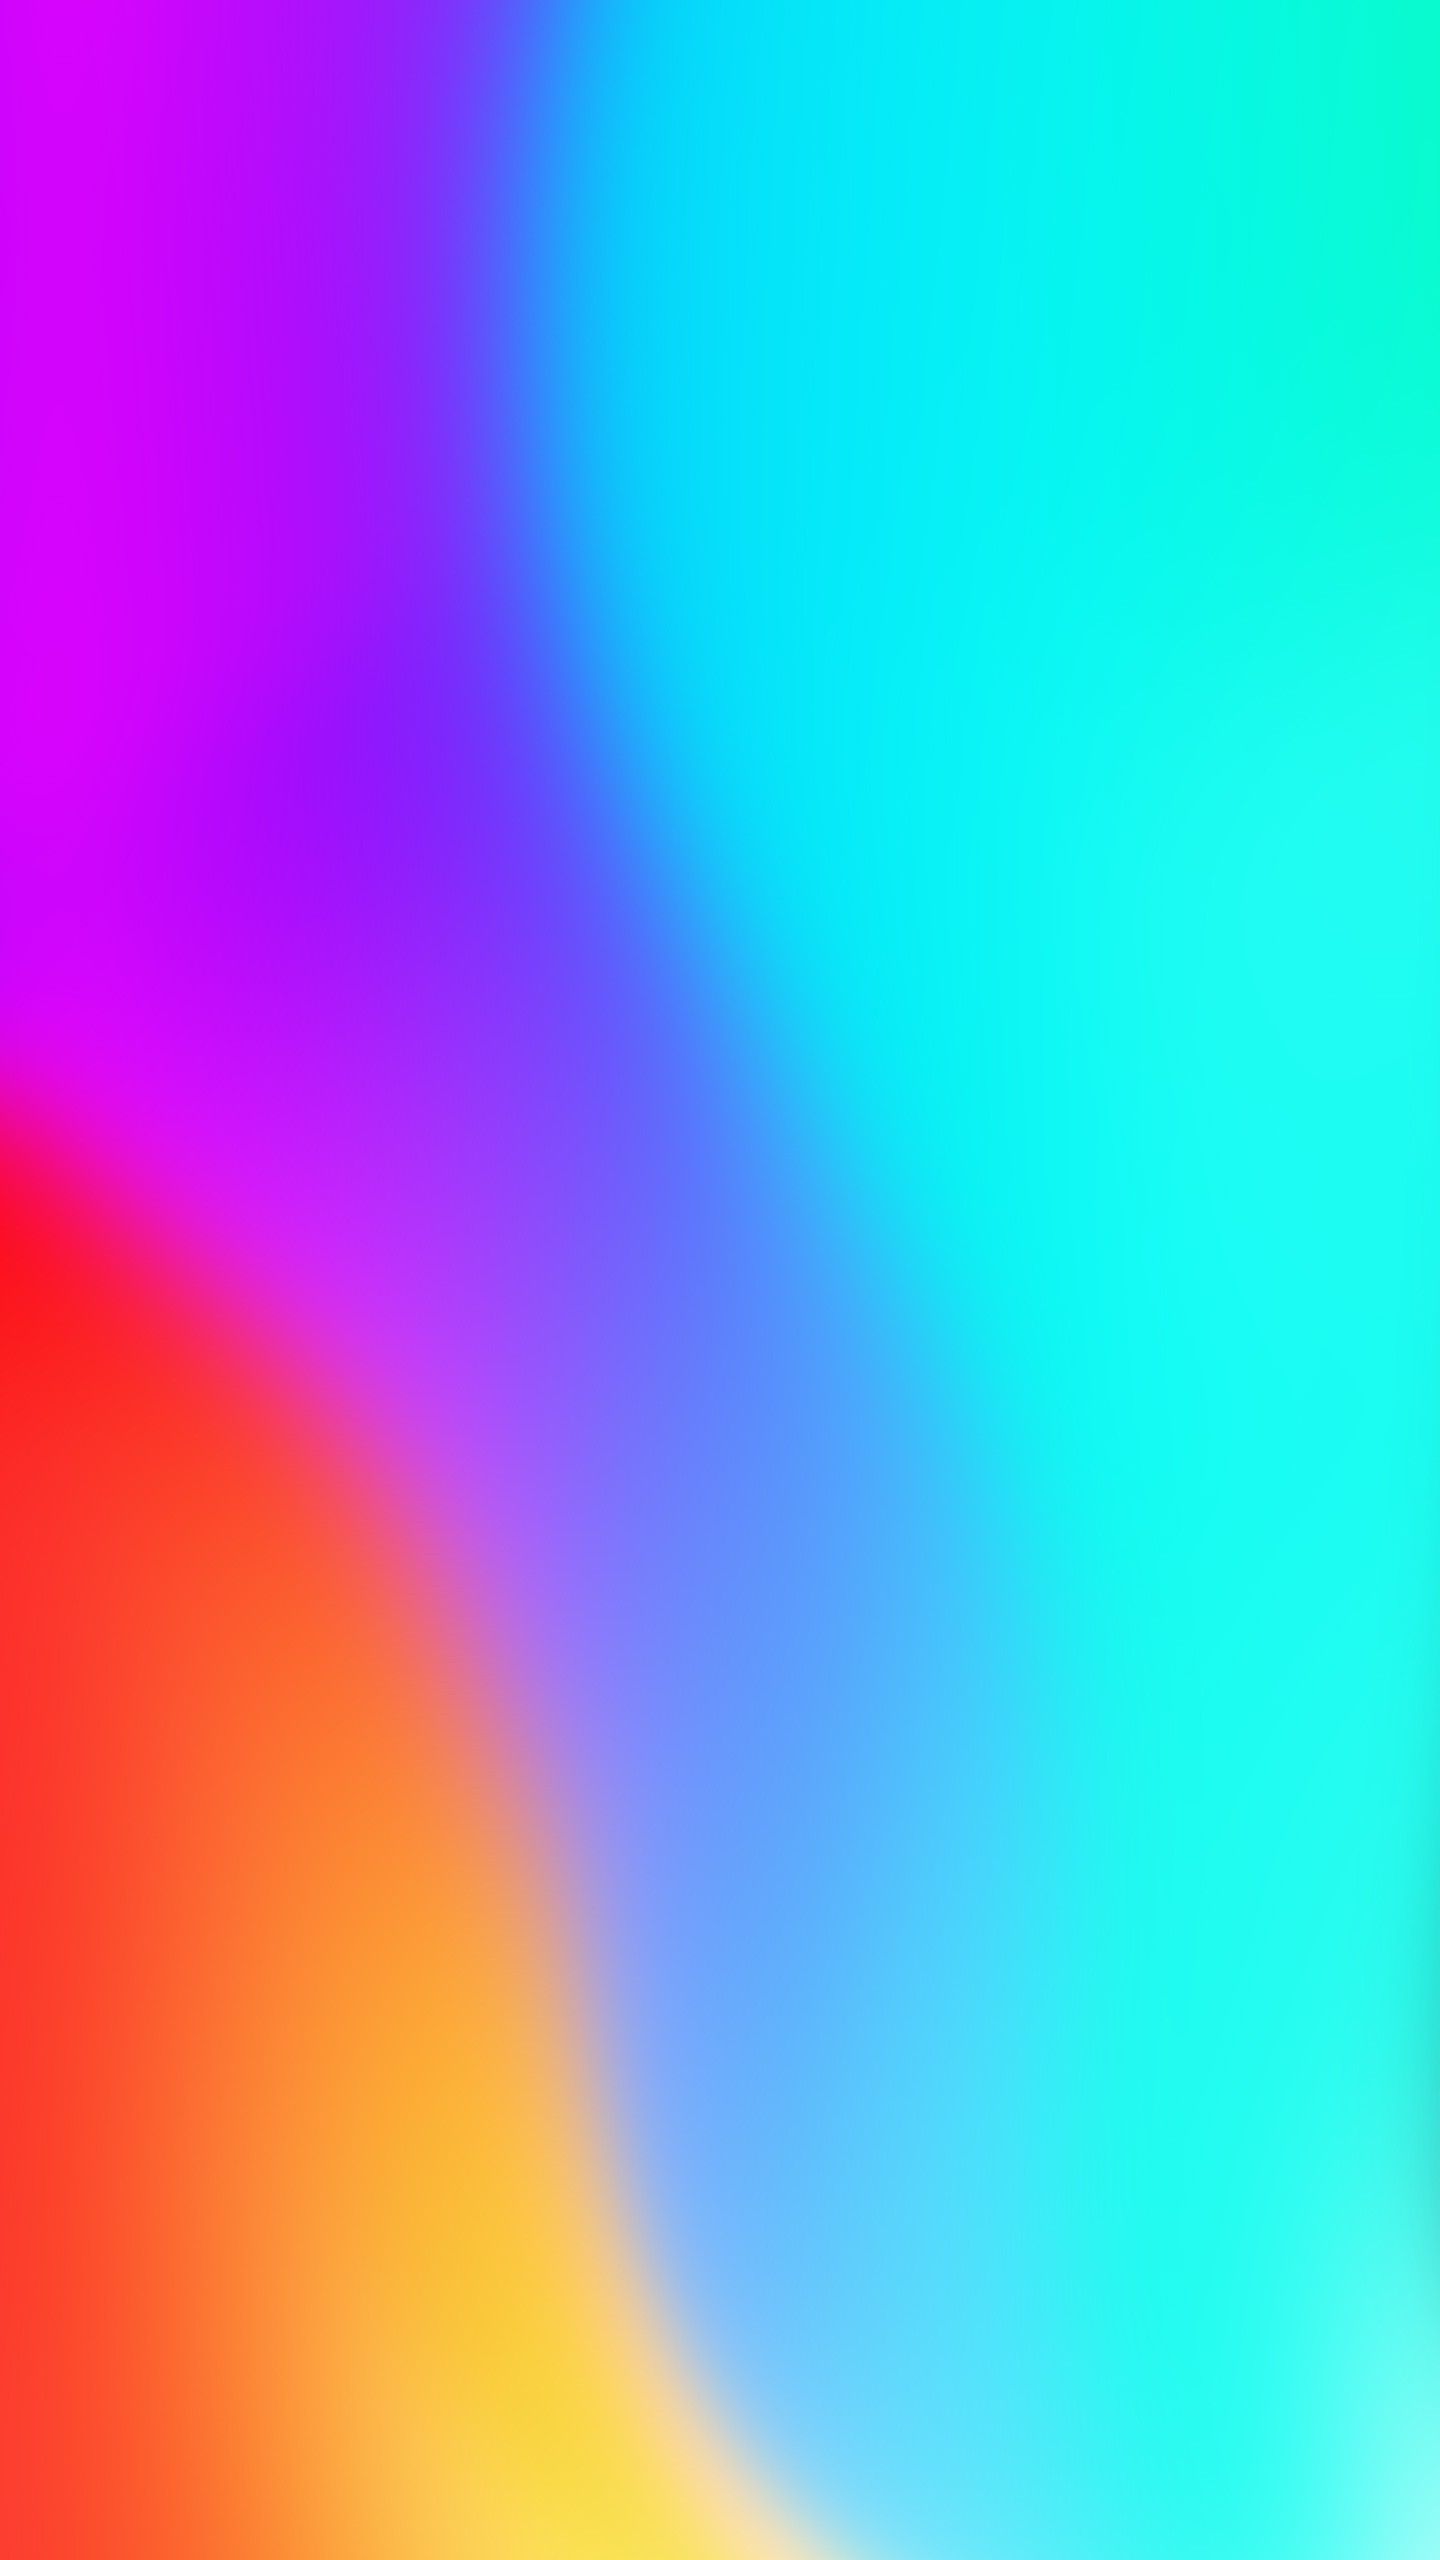 4k Gradient Wallpapers High Quality Download Free